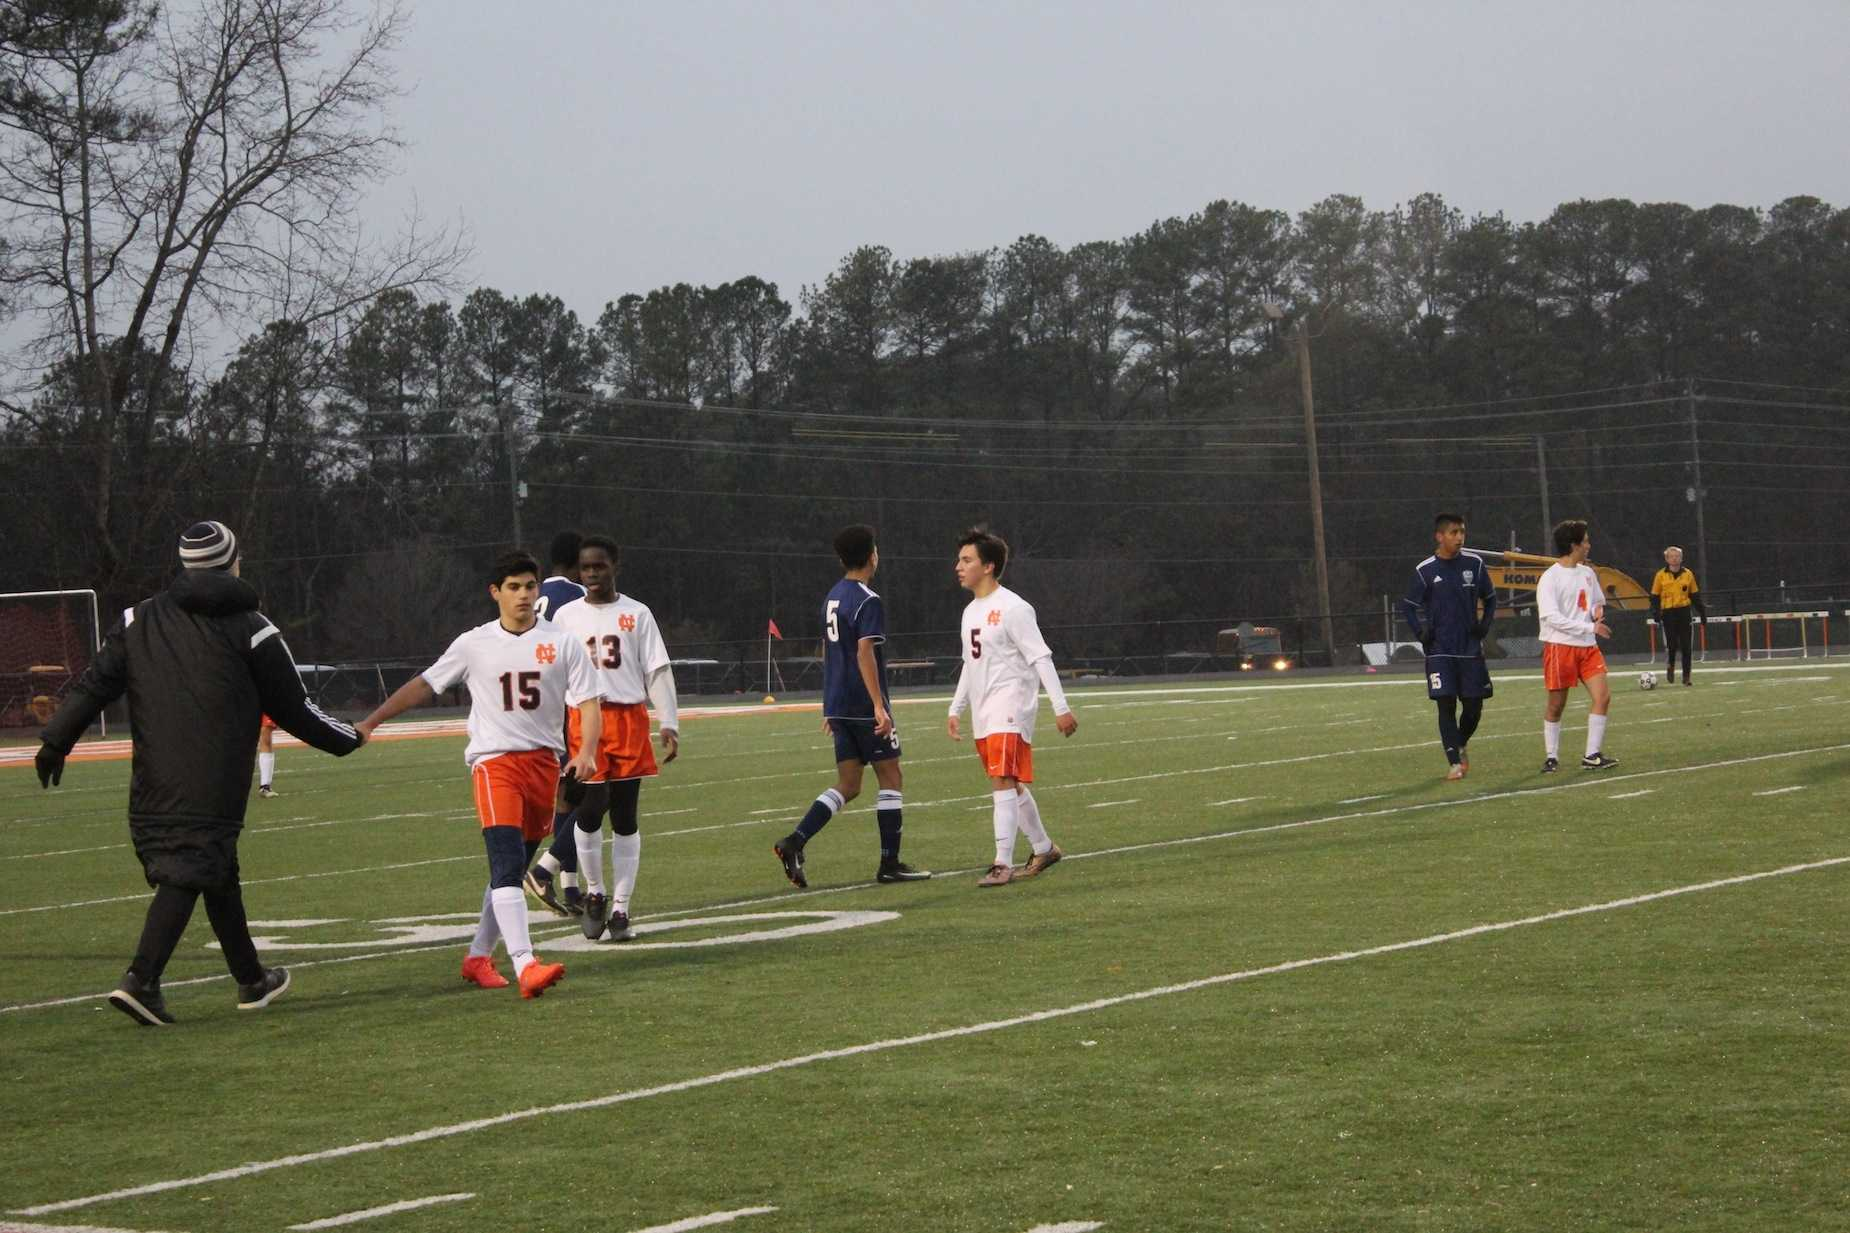 The JV boys celebrated and shook Marietta's hands after a great 4-0 win for the Warriors.